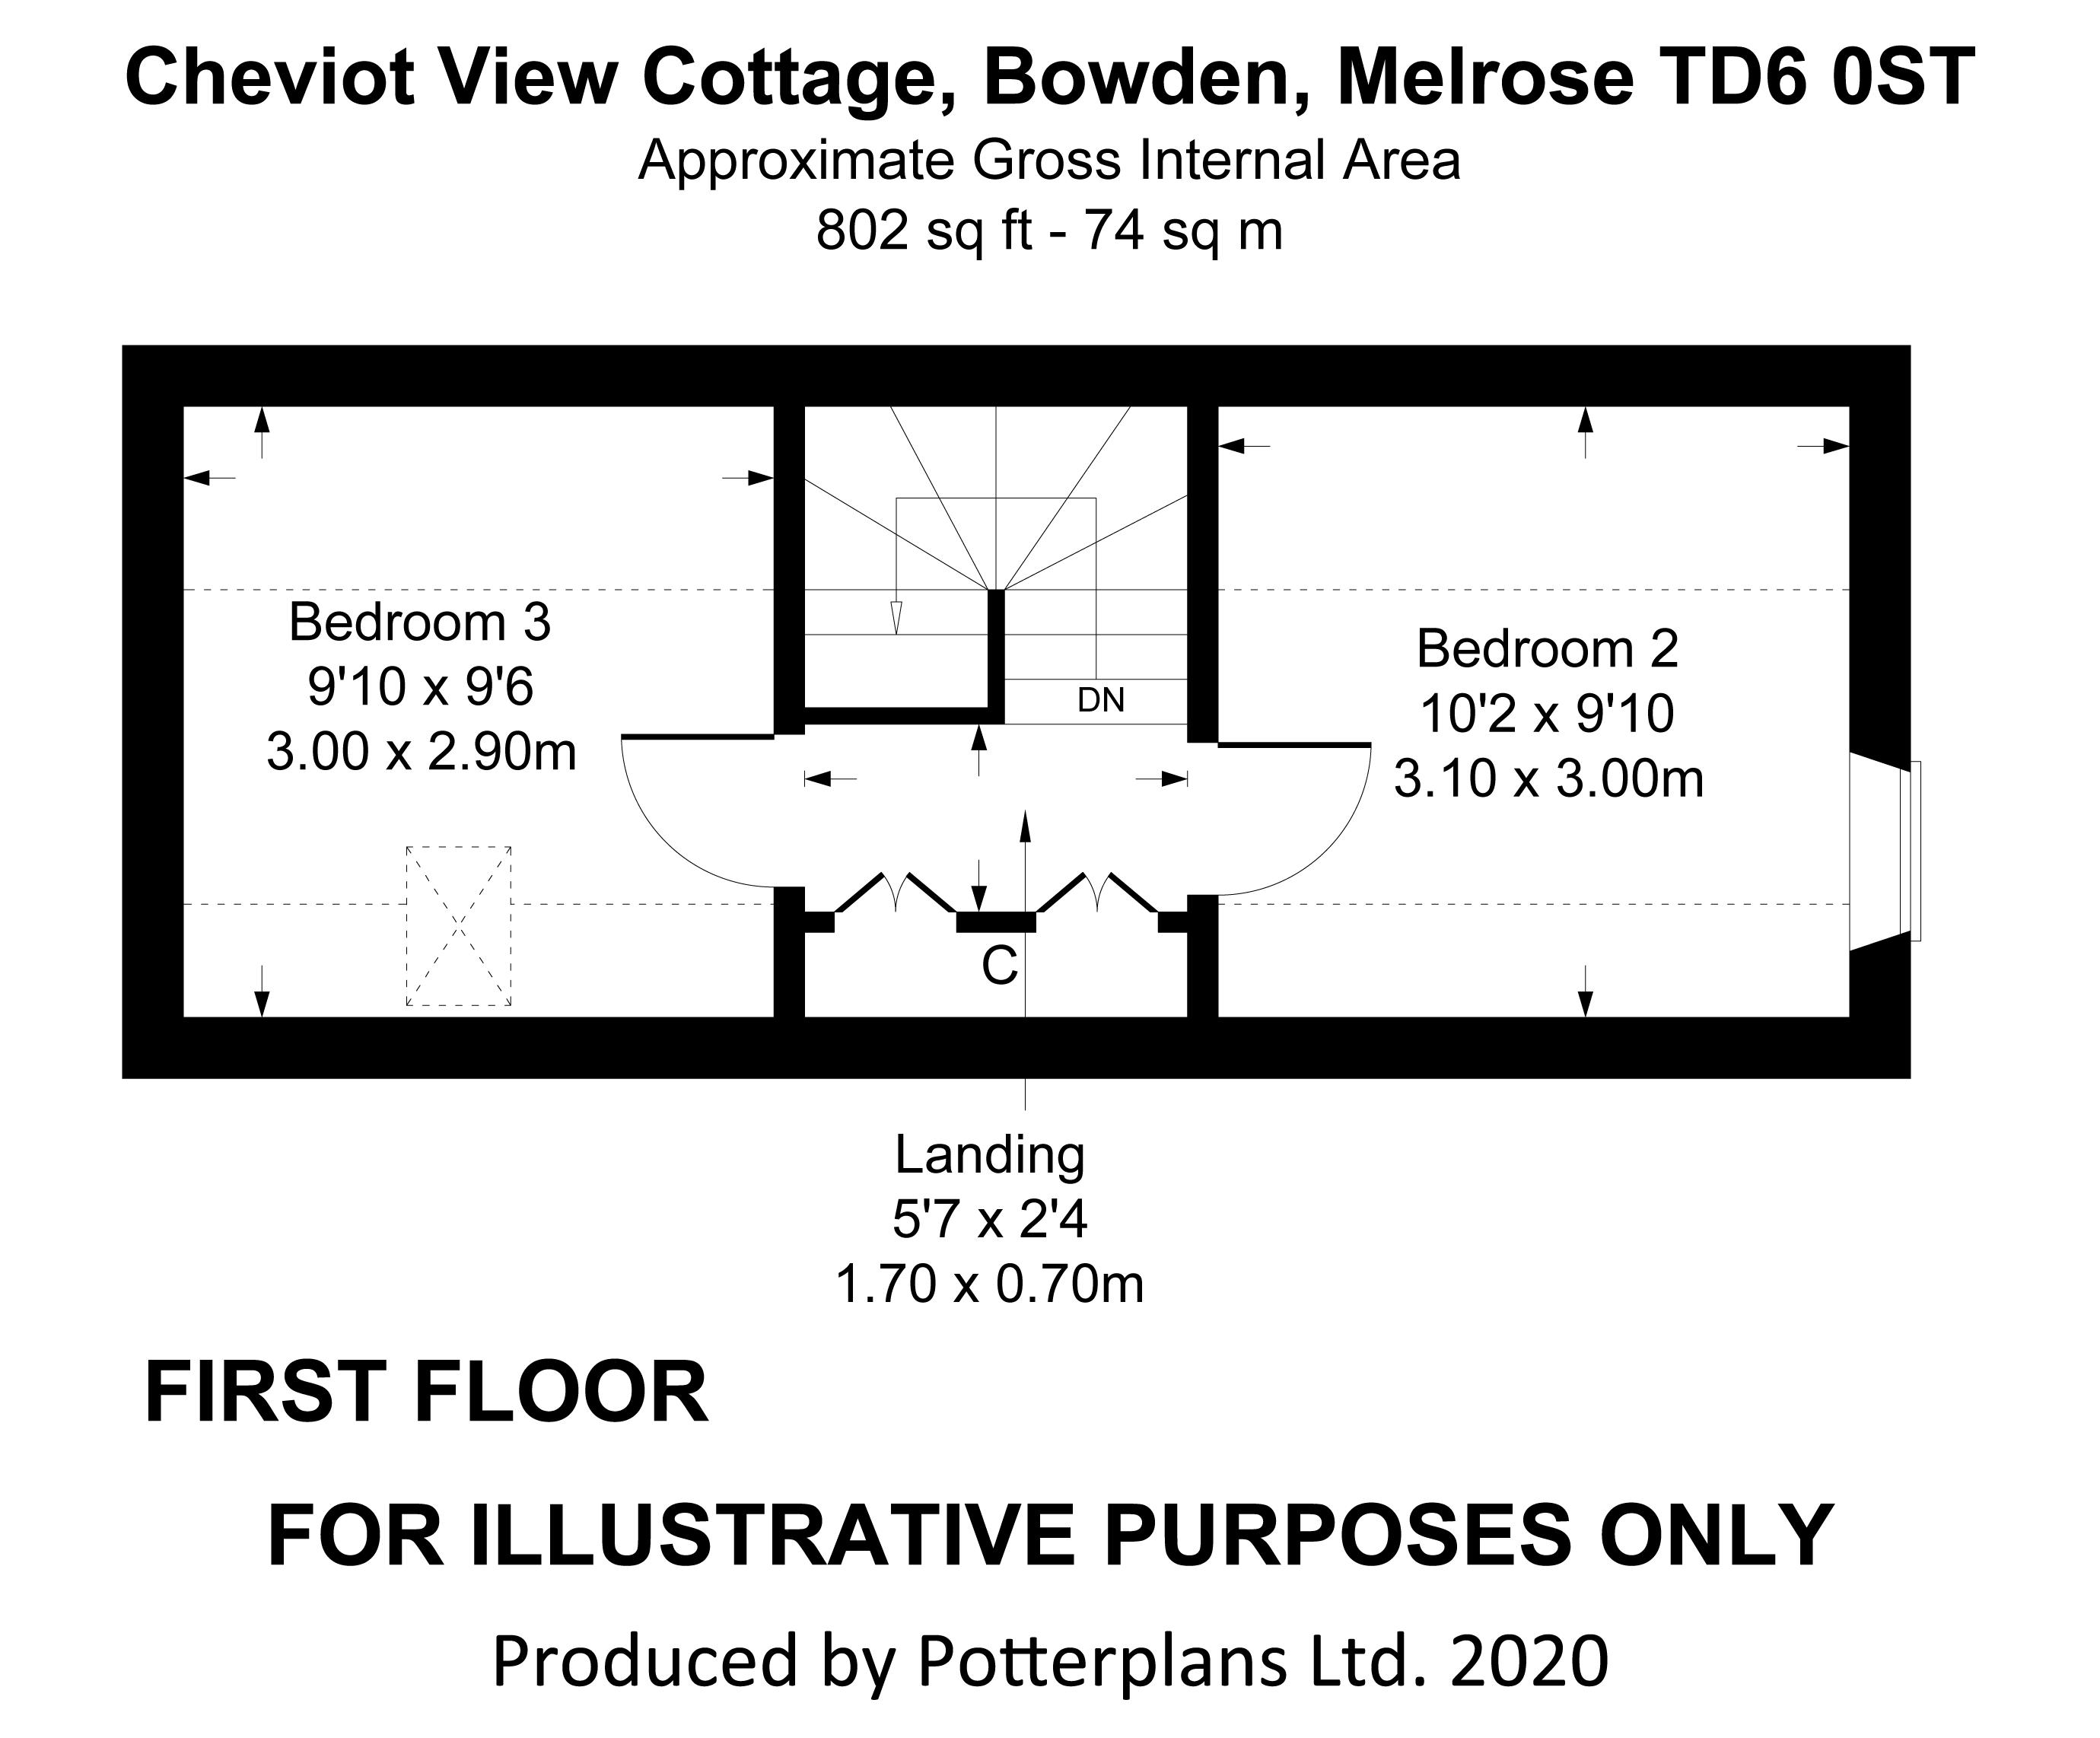 Cheviot View Cottage First Floor